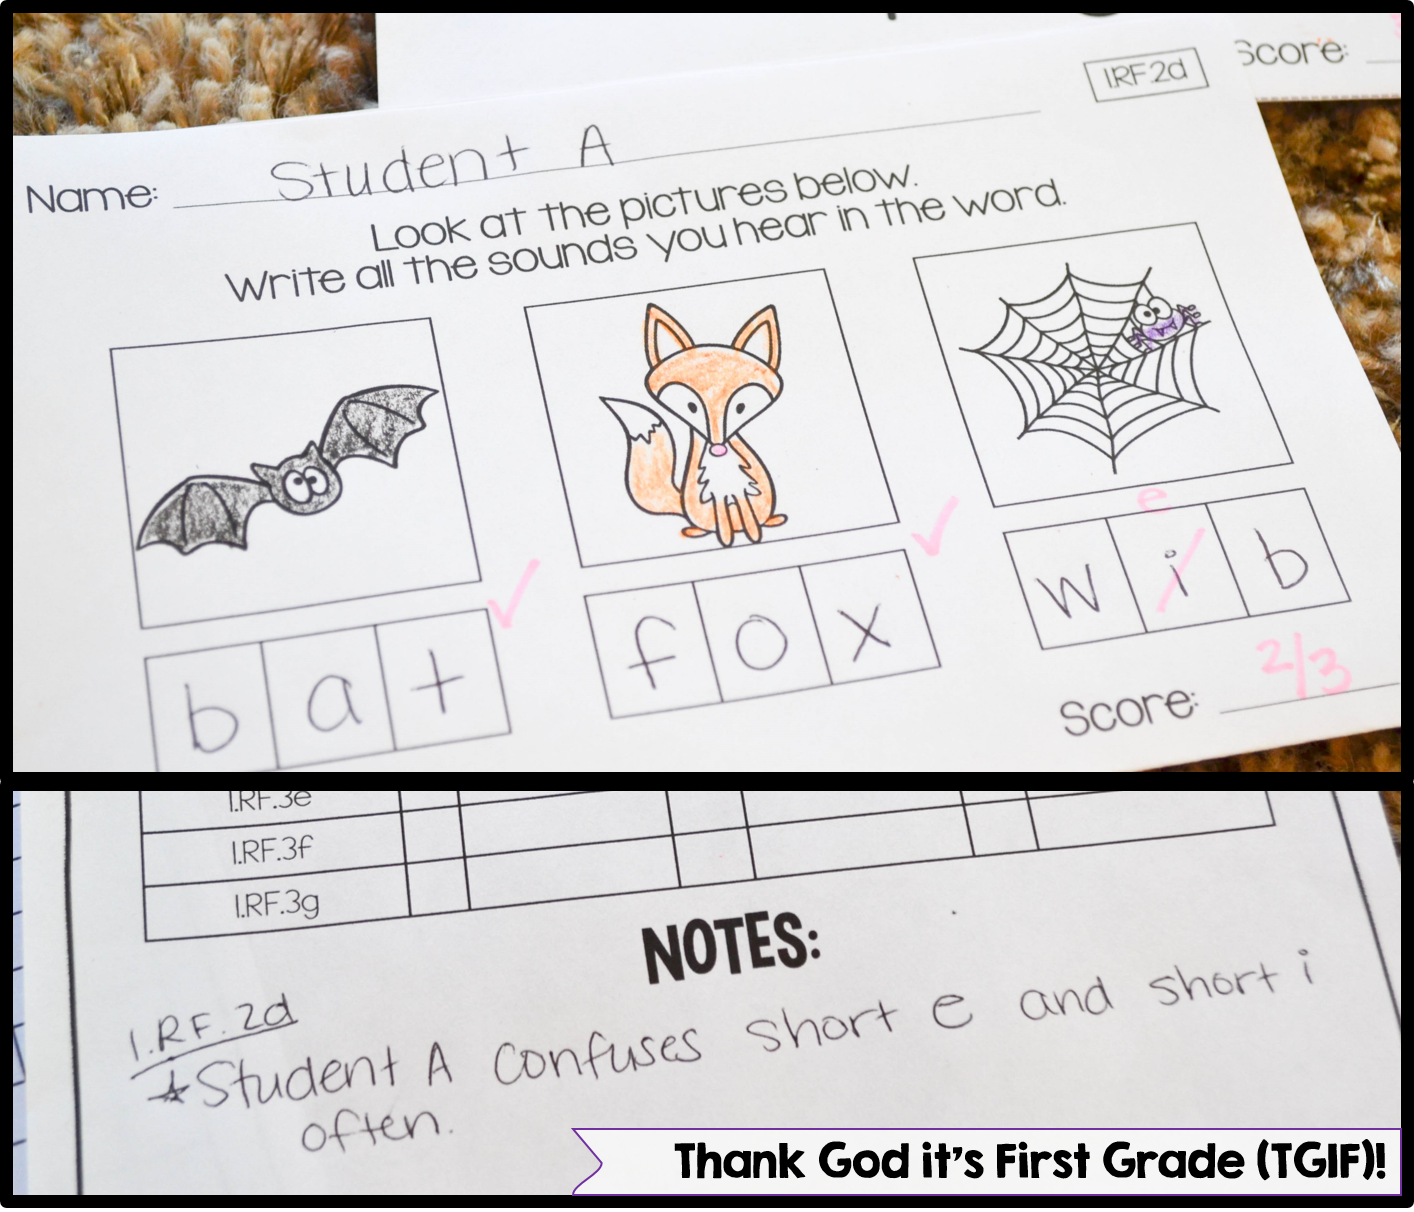 Worksheet Phonics Assessments quick common core assessments for 1st grade thank god its this unit includes all of the phonics standards rf 1 2 and 3 with subsets under those commo